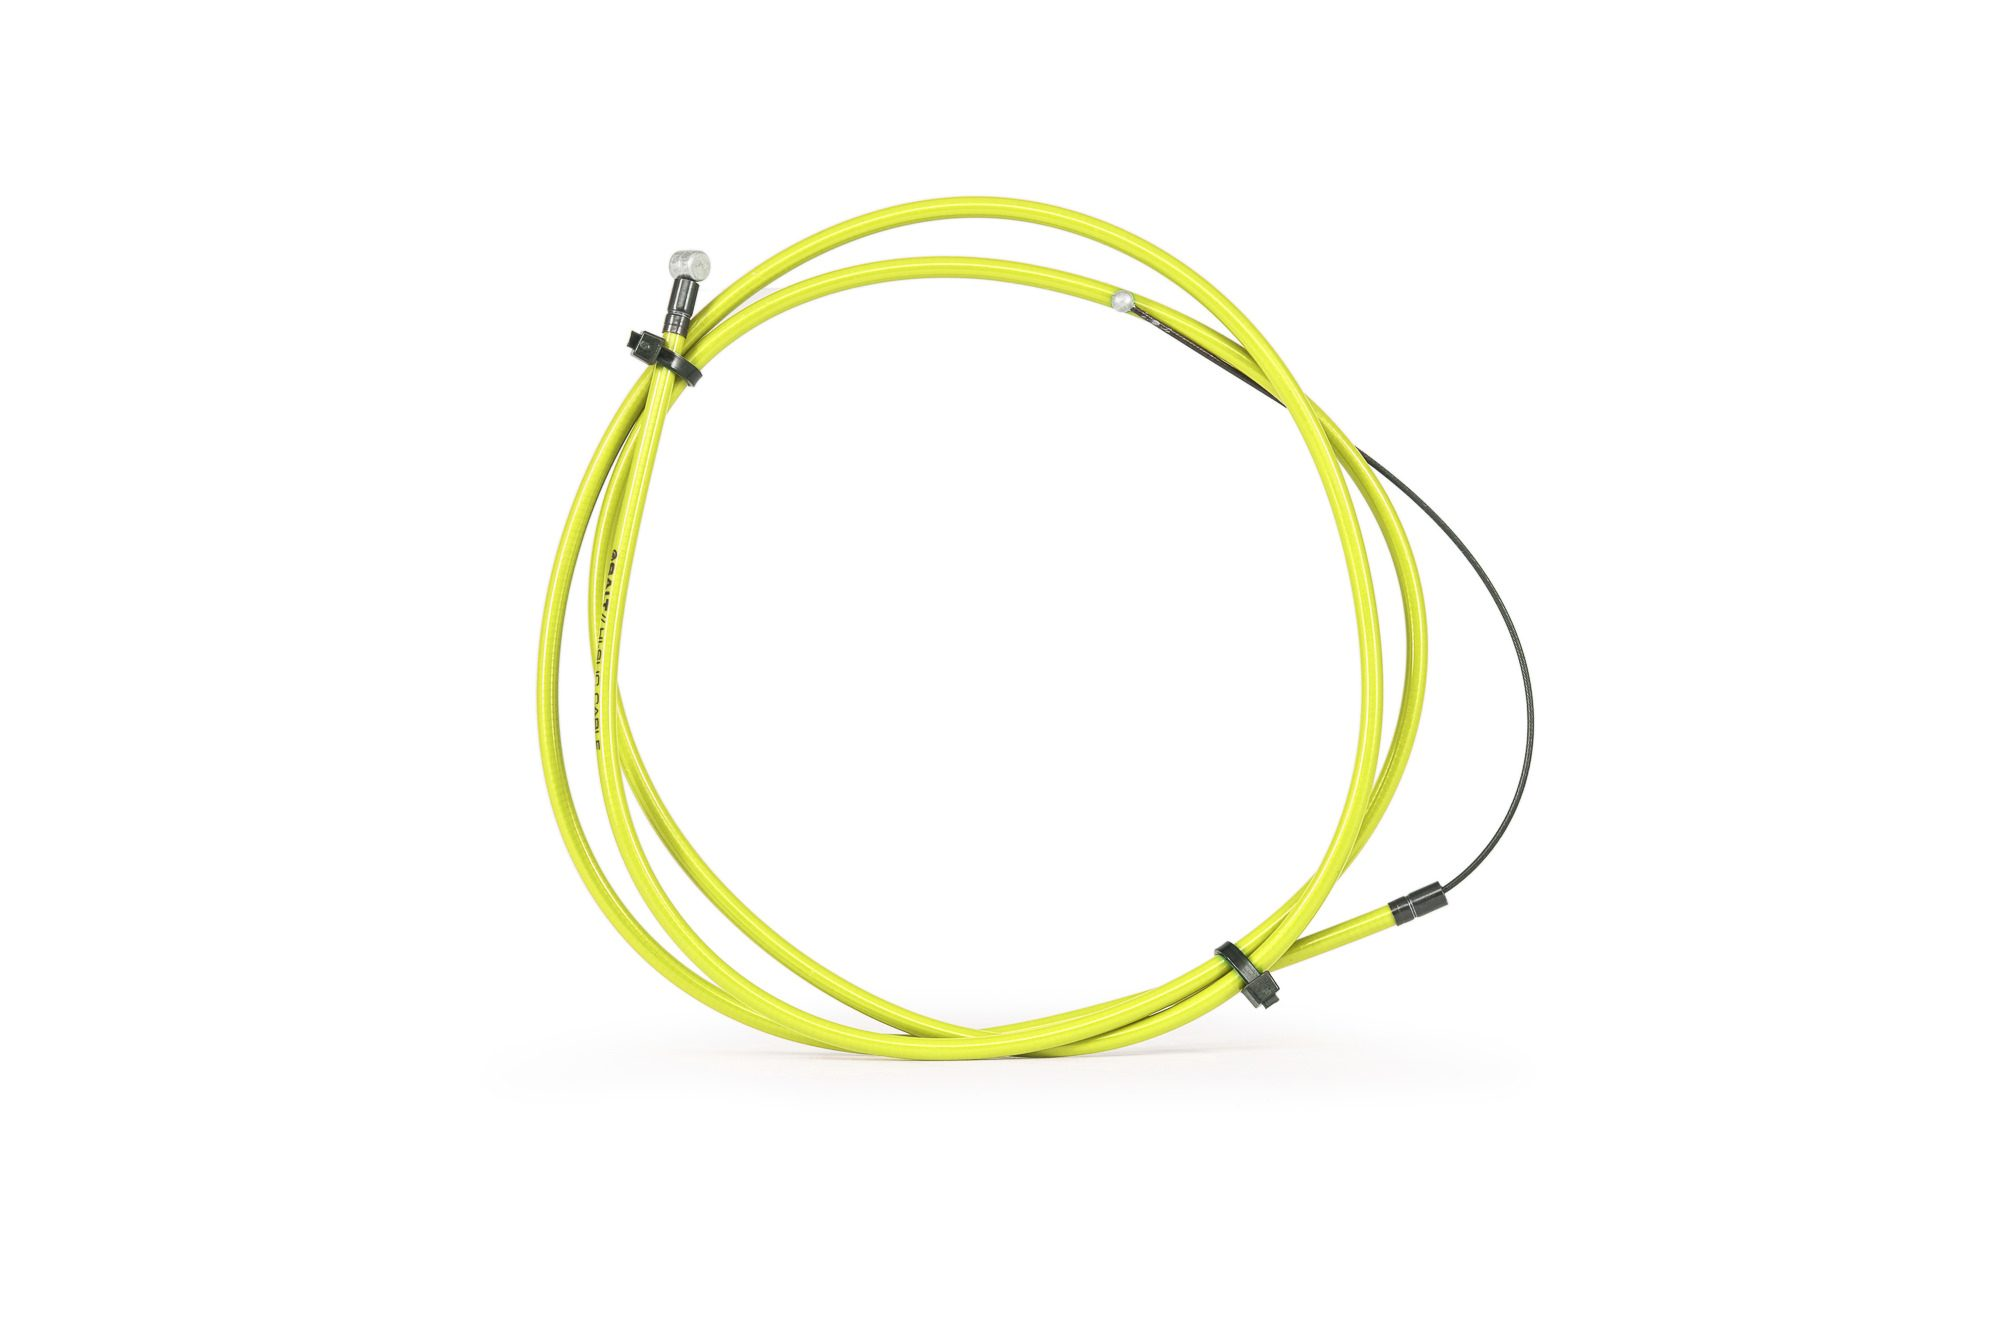 Salt_AM_brake_cable_neon_yellow